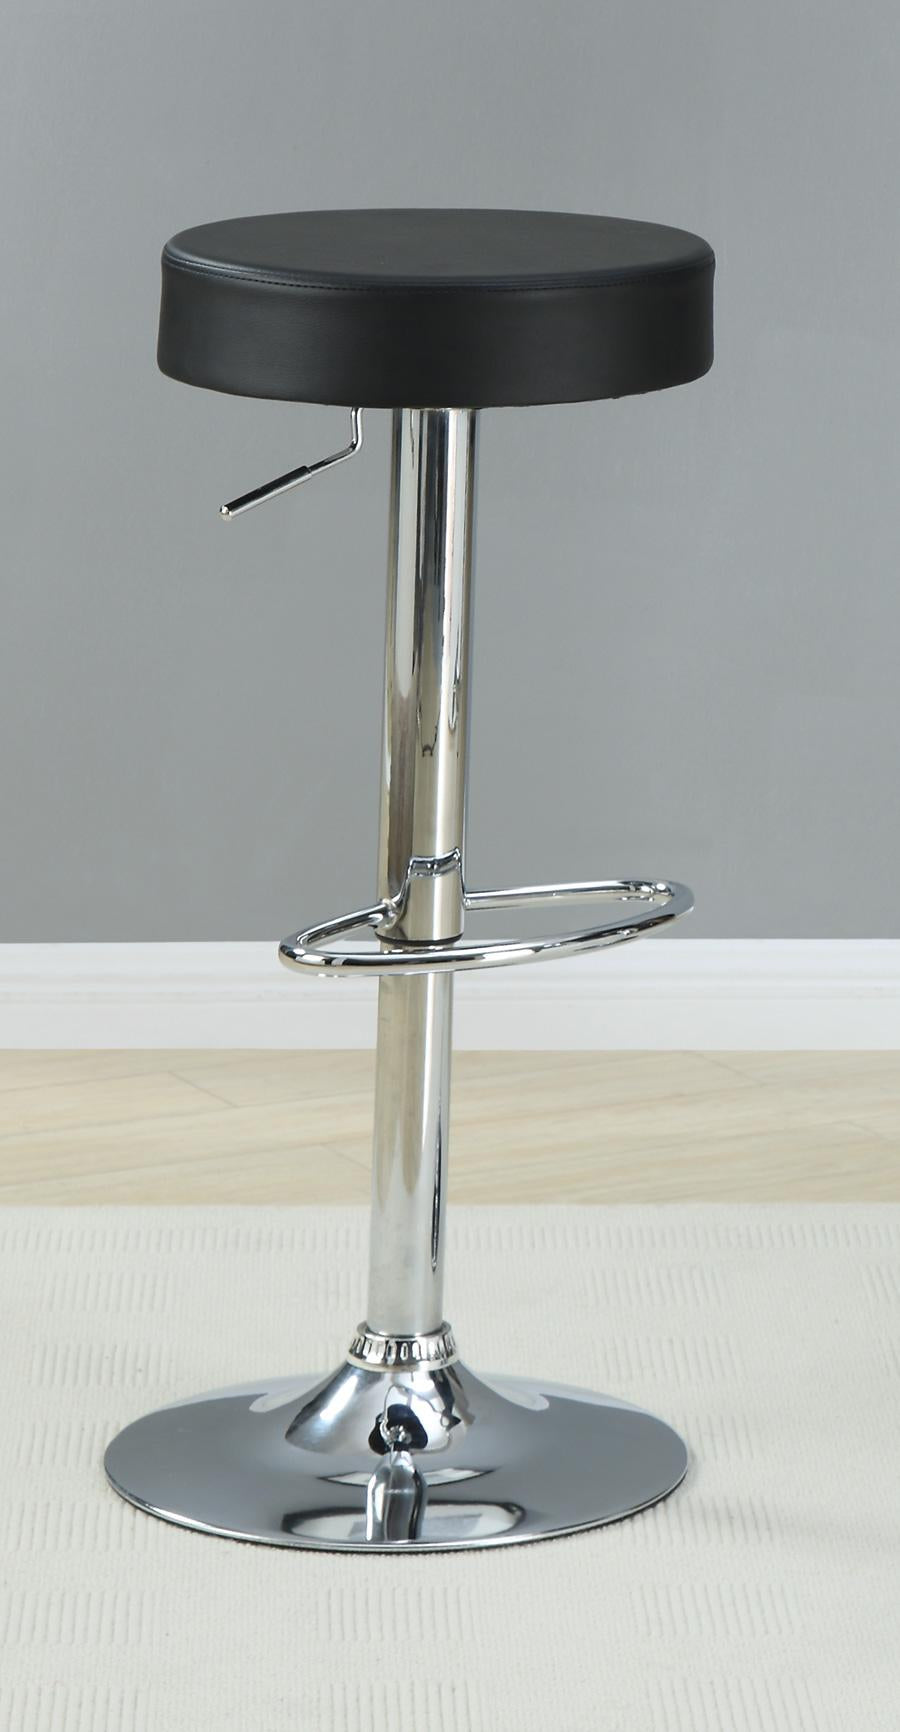 Coaster Adjustable Hight Black Seat Chrome Base Bar Stool